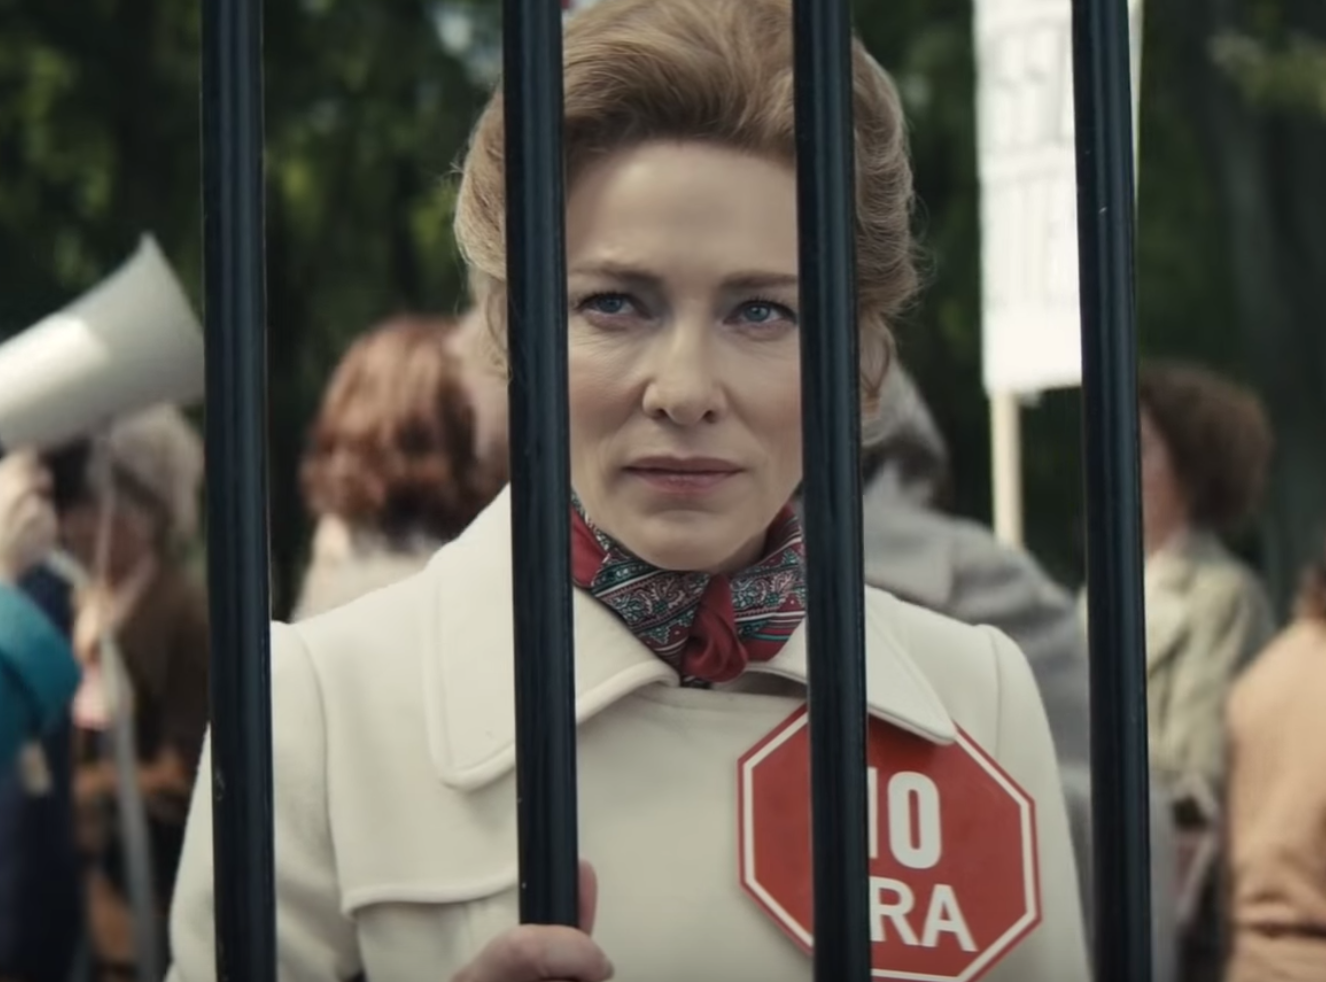 Cate Blanchette Leads A Conservative Backlash To The Equal Rights Movements In 'Mrs. America' Trailer